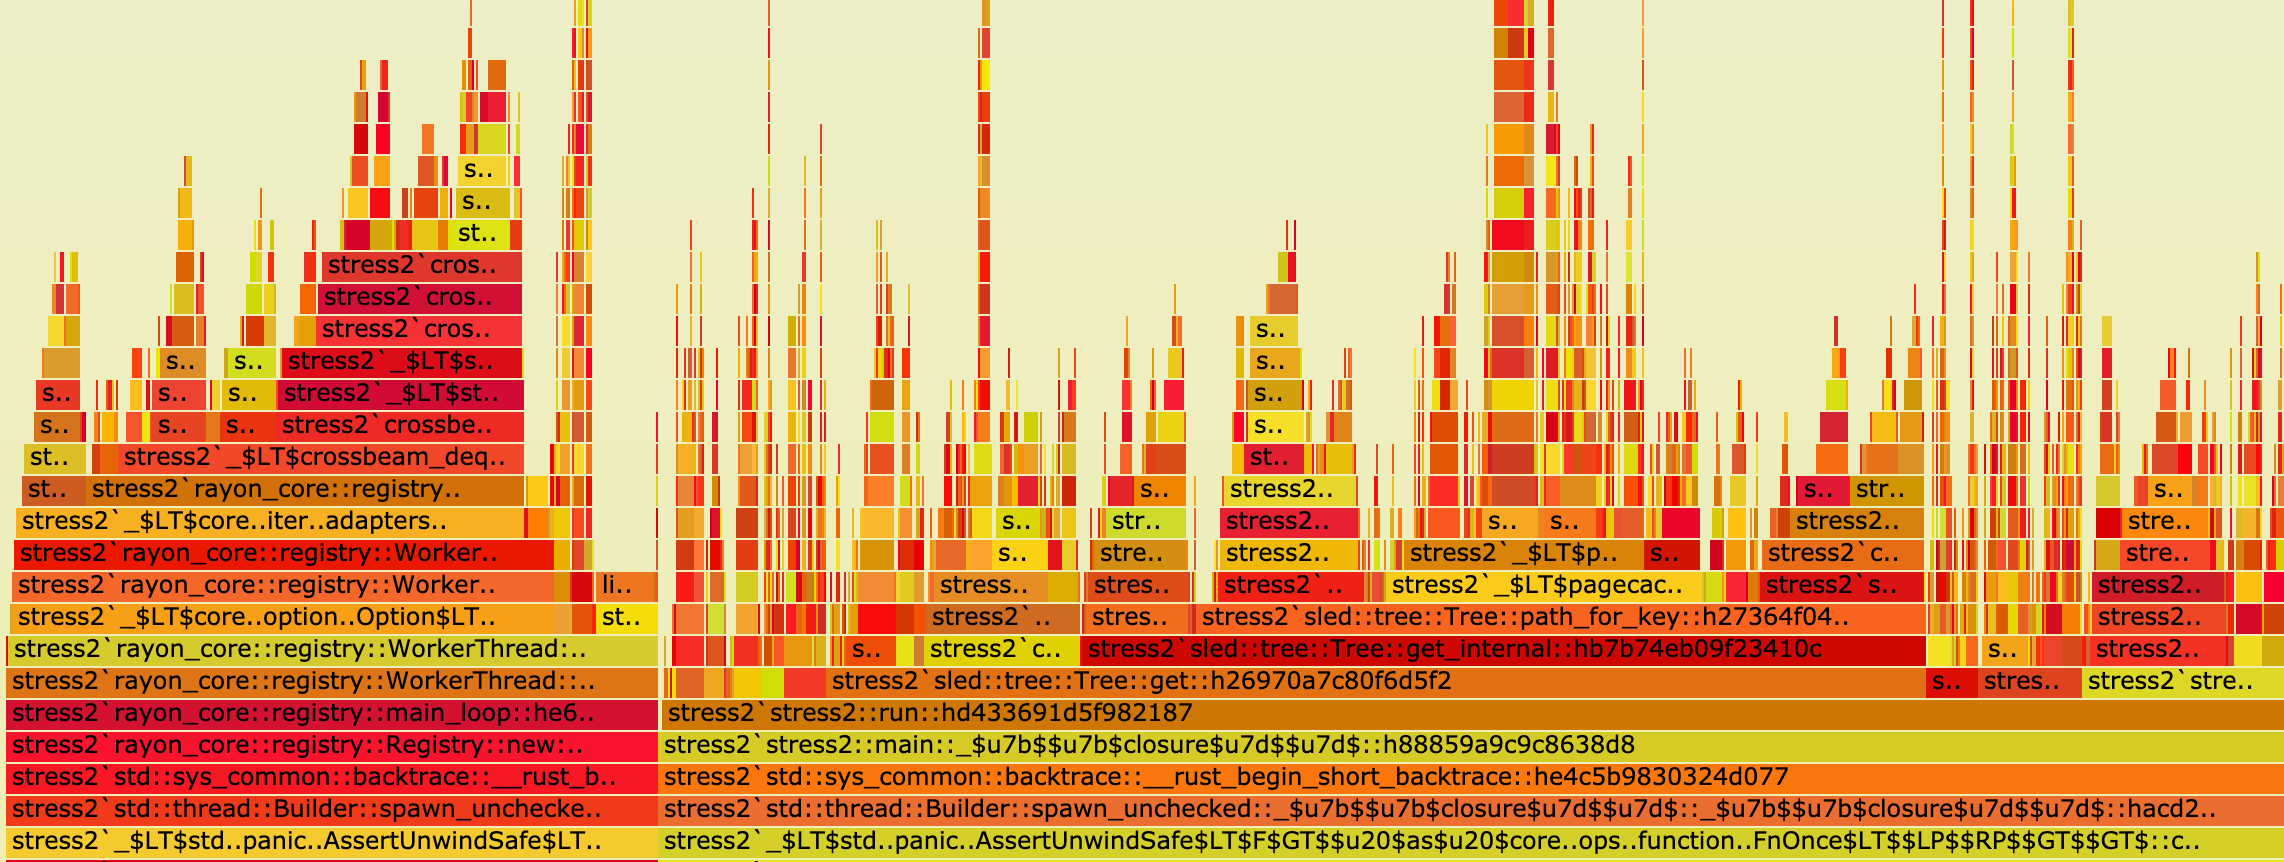 colorized flamegraph output